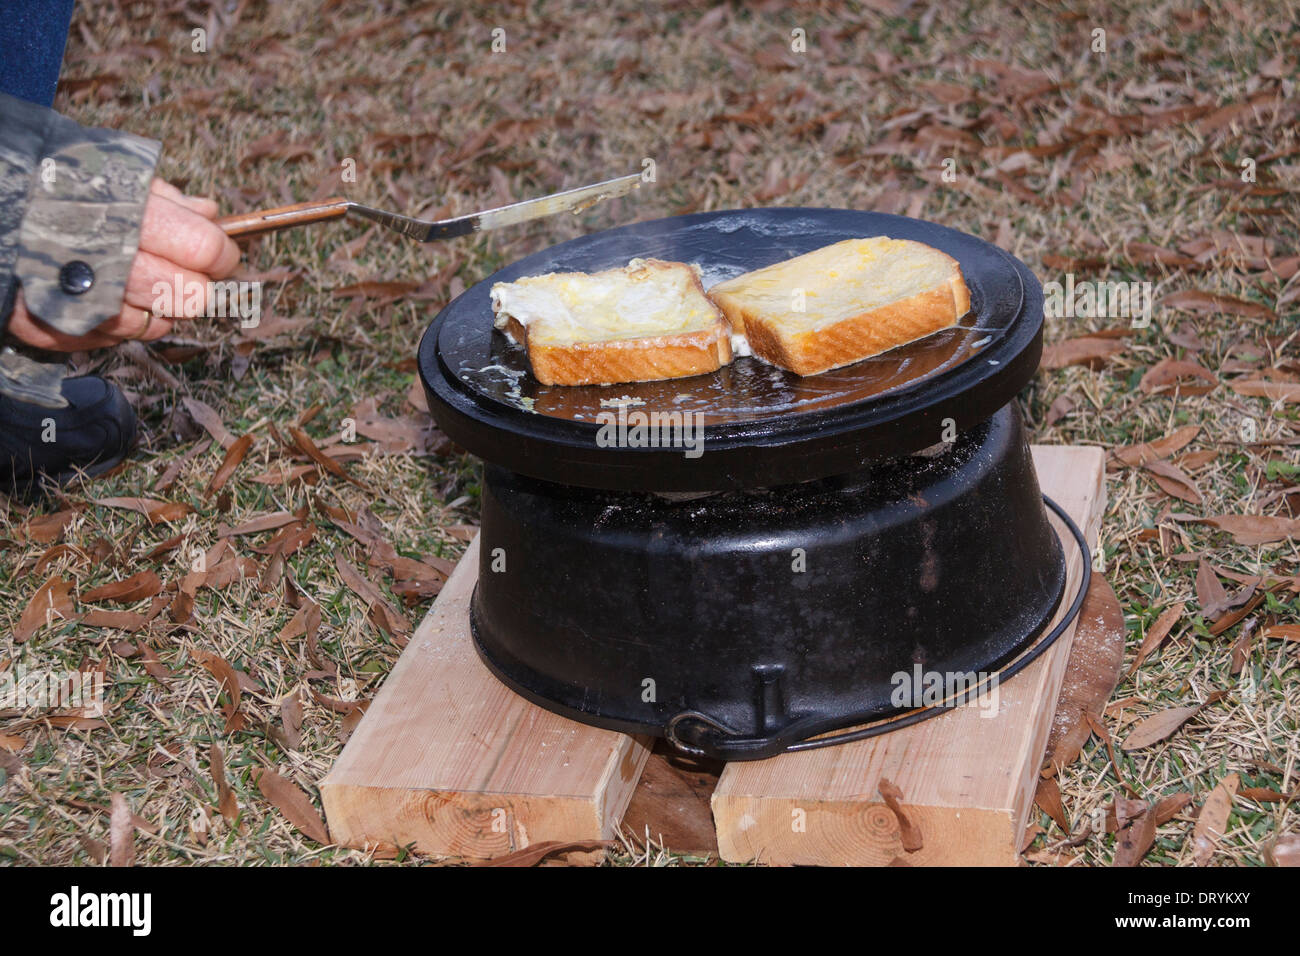 Cooking French Toast On Upside Down Lid Of Dutch Oven Cast Iron